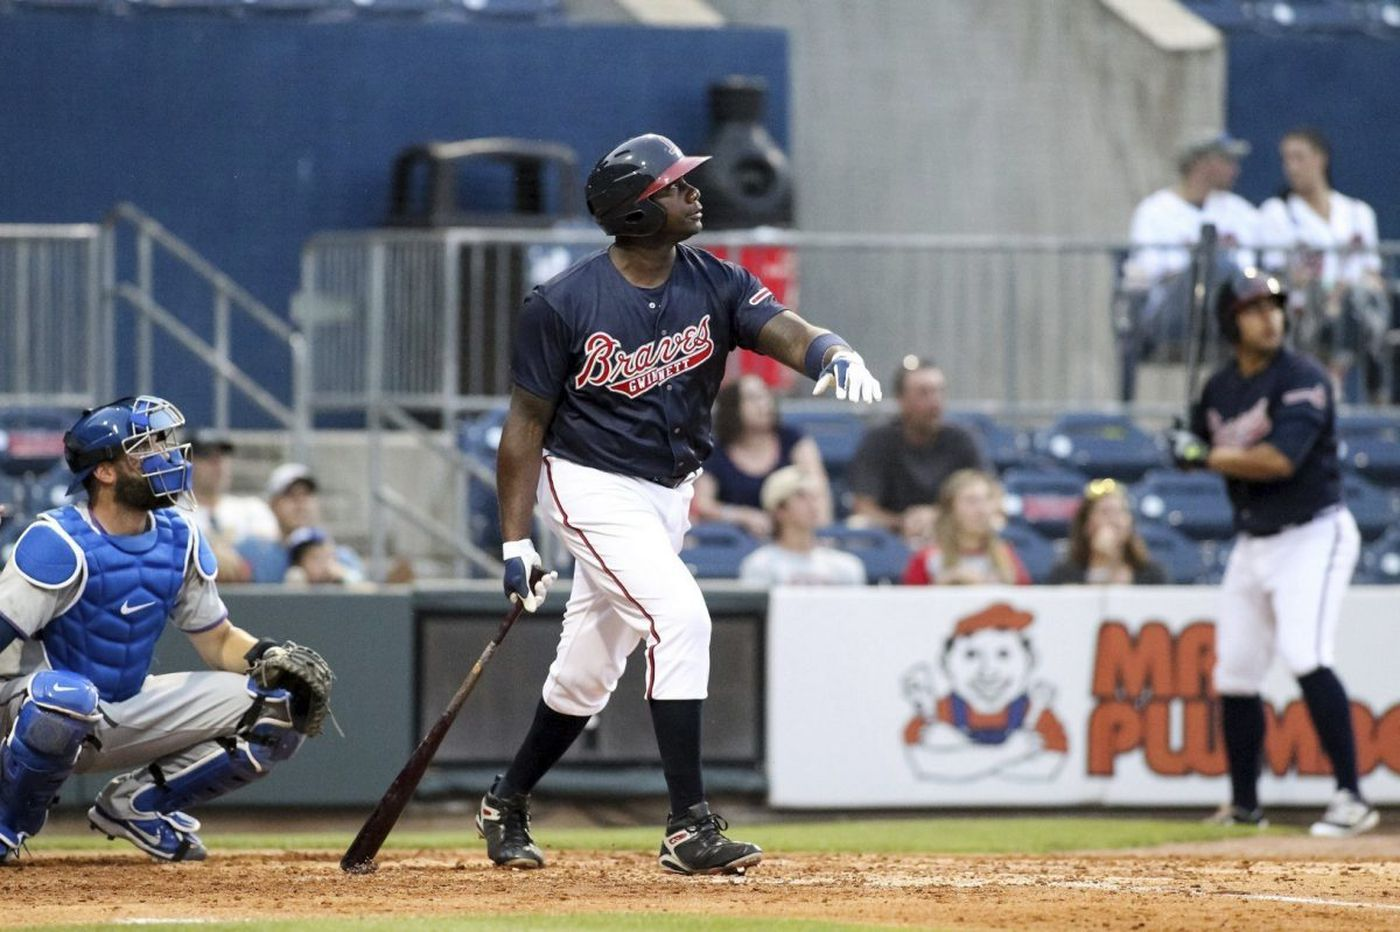 WATCH: Ryan Howard hits walk-off home run for Albuquerque Isotopes